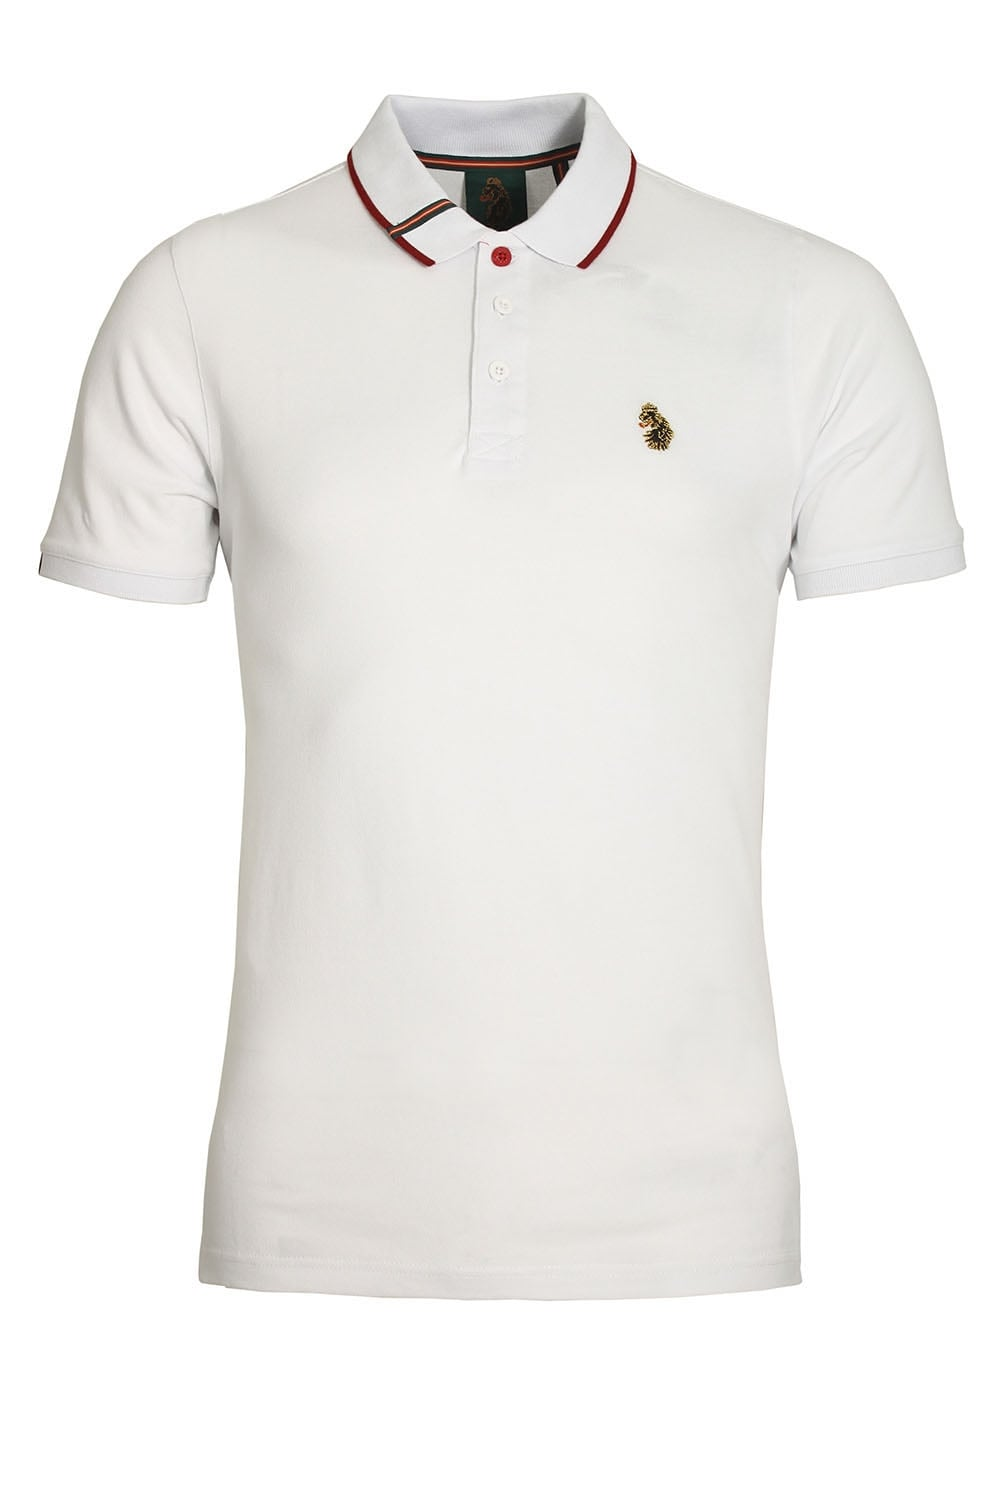 Luke sport meads polo shirt white shop luke sport polo for Luke donald polo shirts